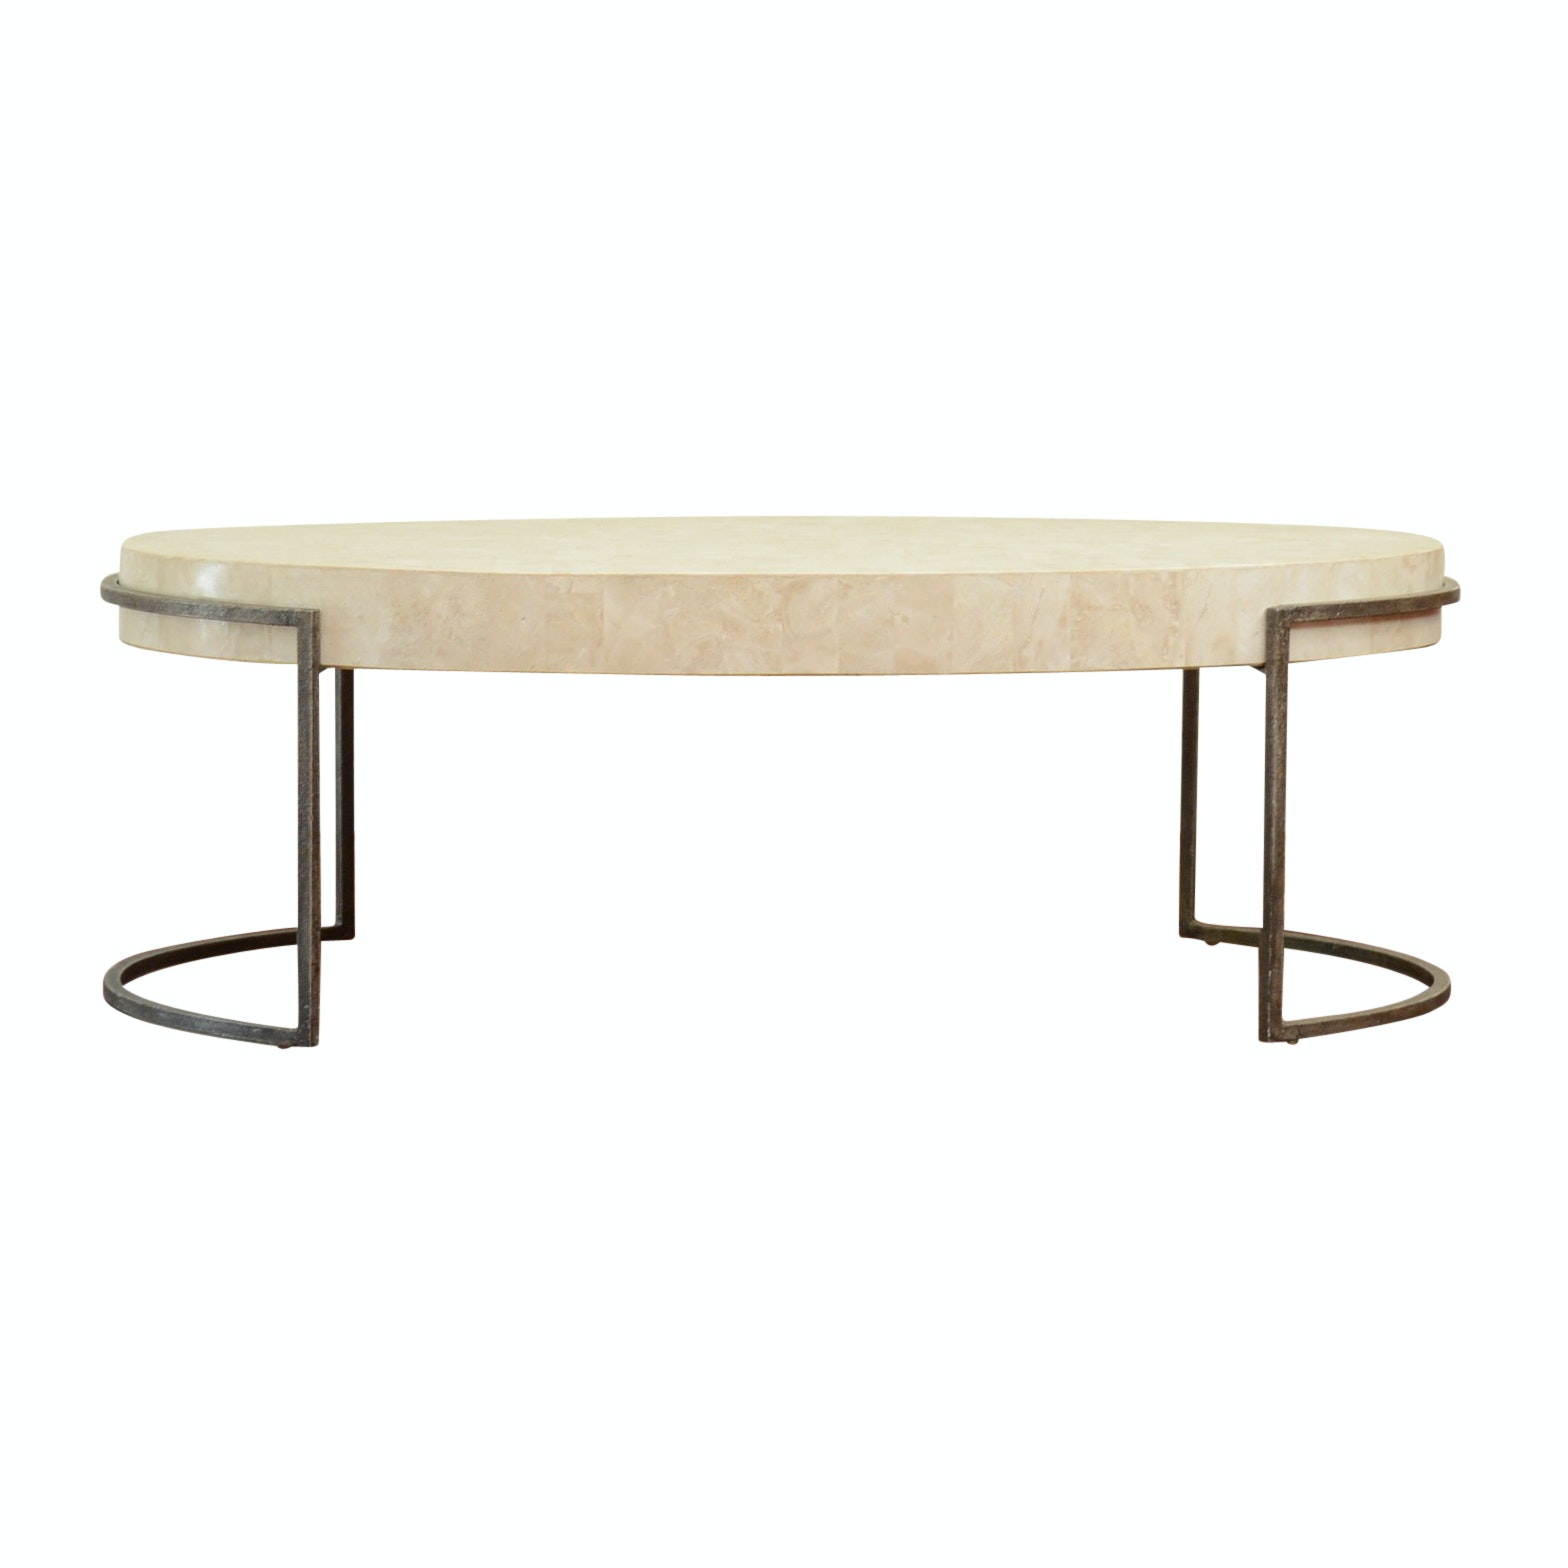 Contempoary Oval Coffee Table with Faux Marble Laminate